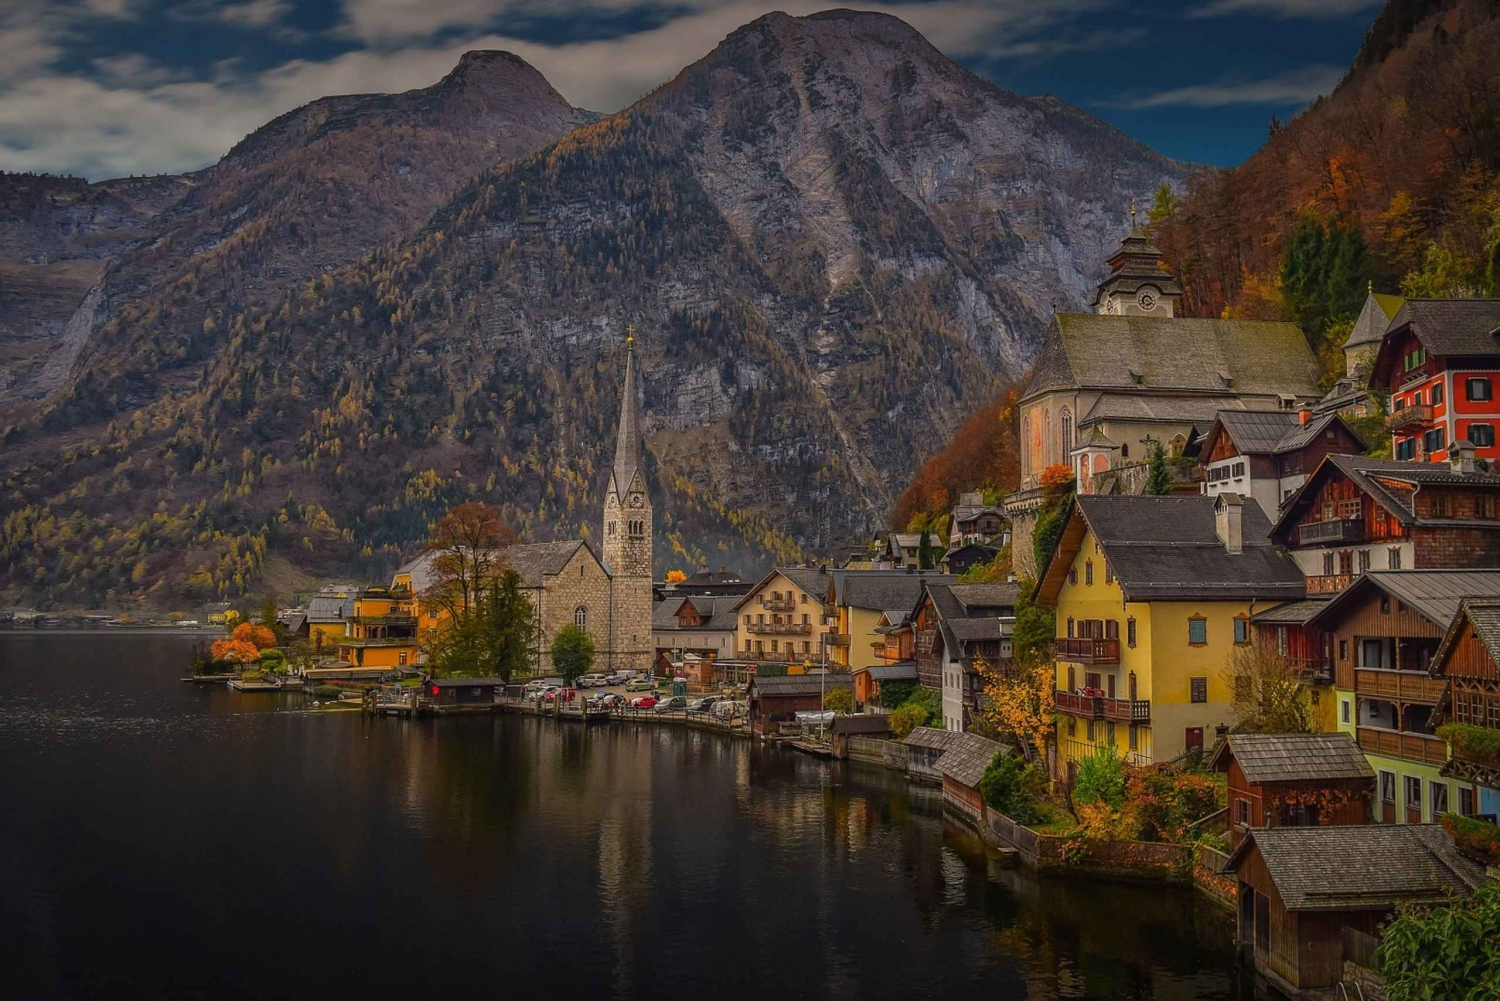 From Melk, Hallstatt and Salzburg Private Tour